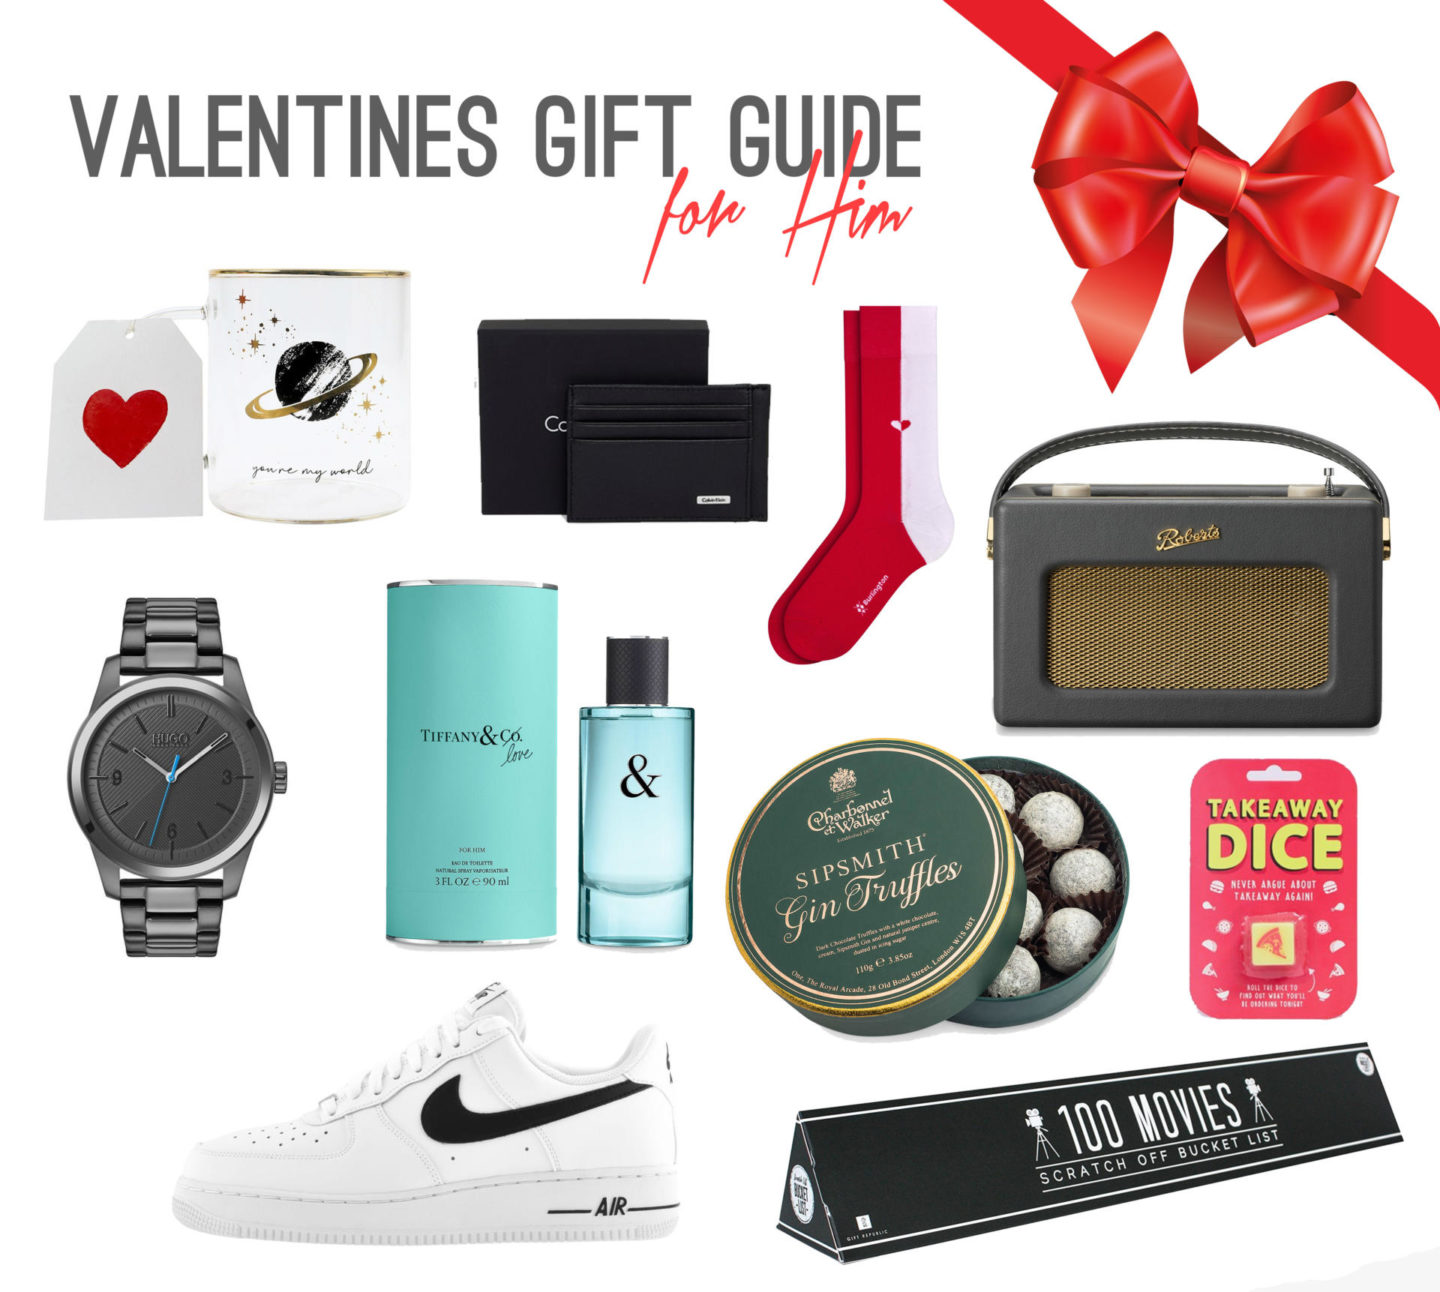 Last Minute Ideas for a Valentine's Day Gifts - Rachel Nicole UK Blogger